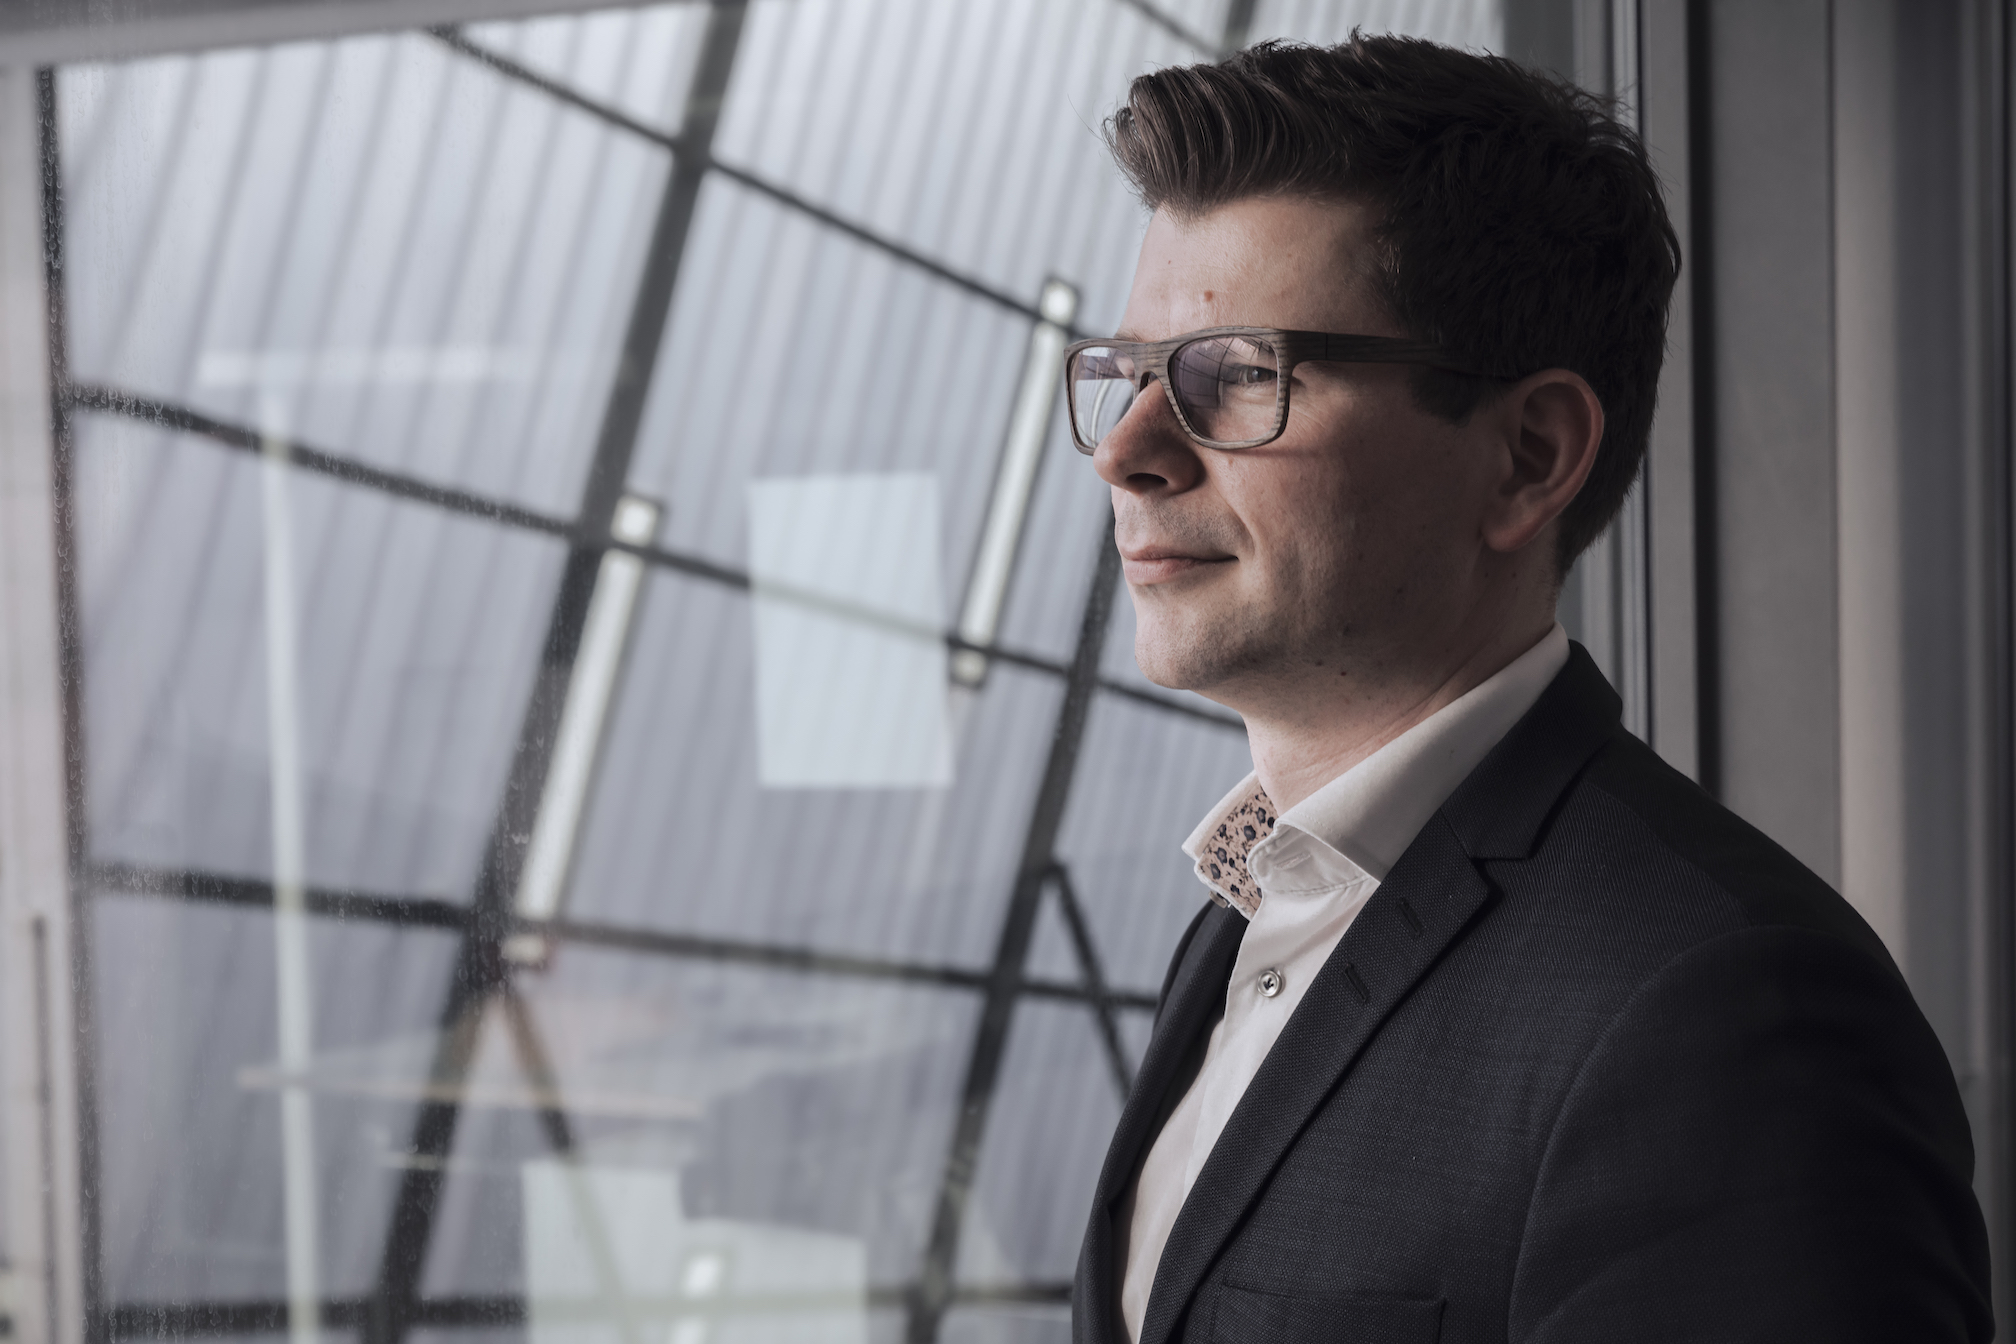 Christoph-Platzer-First 100 Days as CEO-Parkside-Interactive